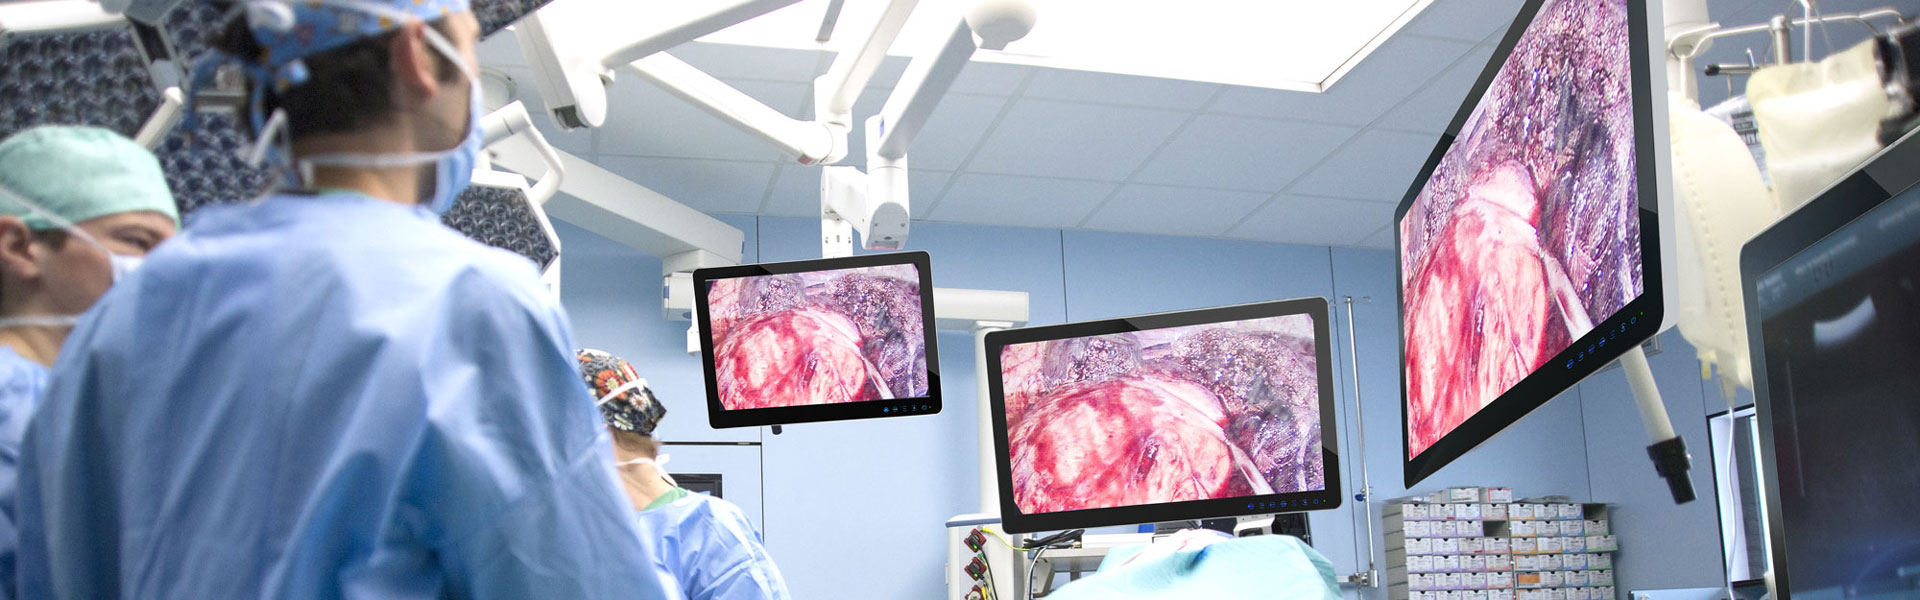 Displays / Monitors in Applications: Operating Theater